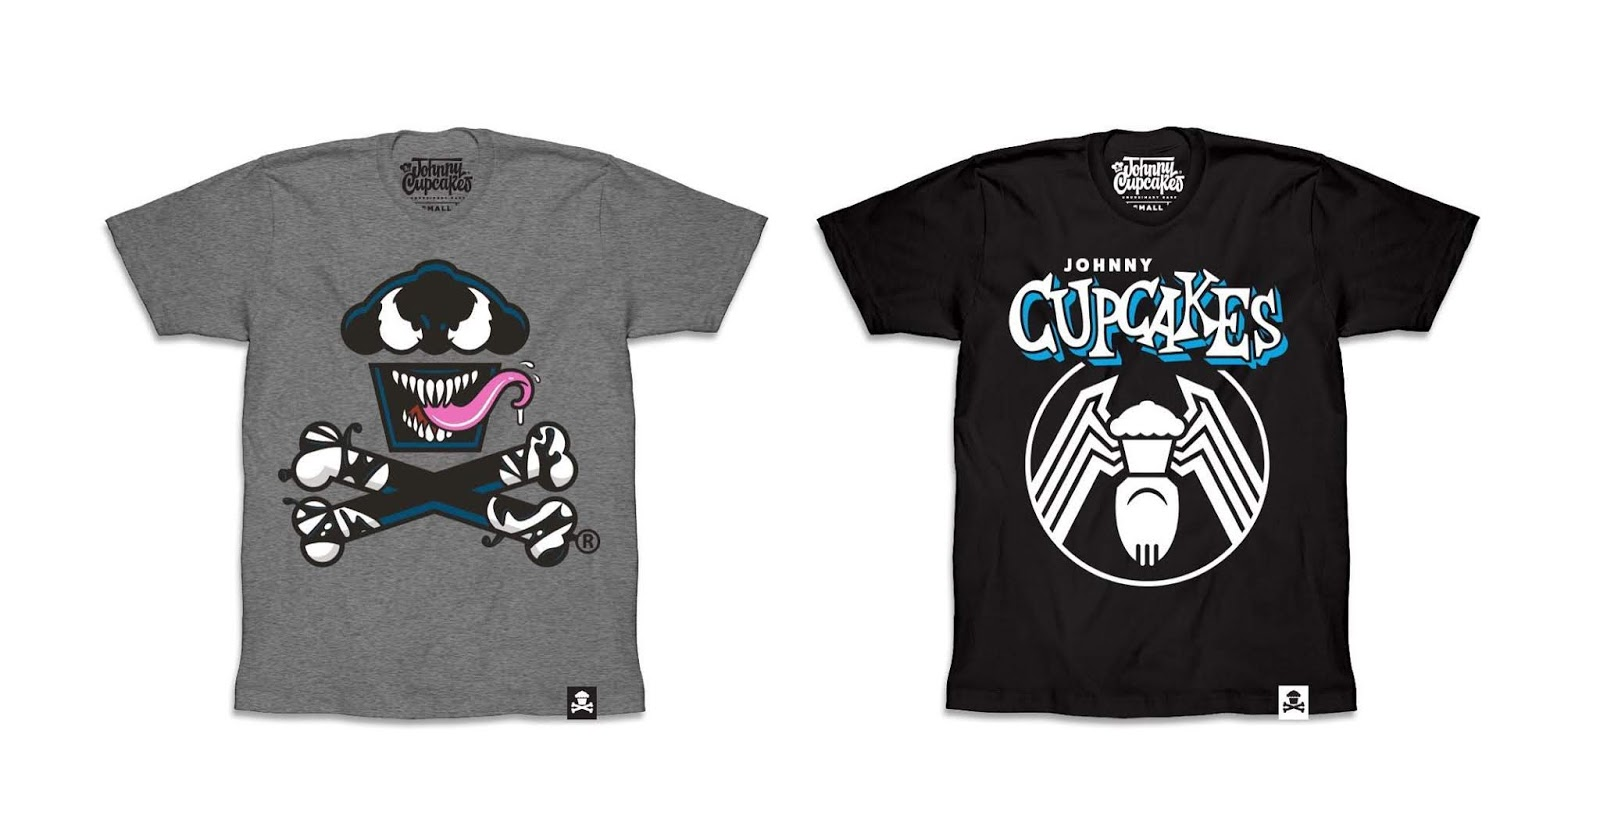 4d65cd07a The Blot Says...: Marvel's Venom T-Shirt Collection by Johnny Cupcakes